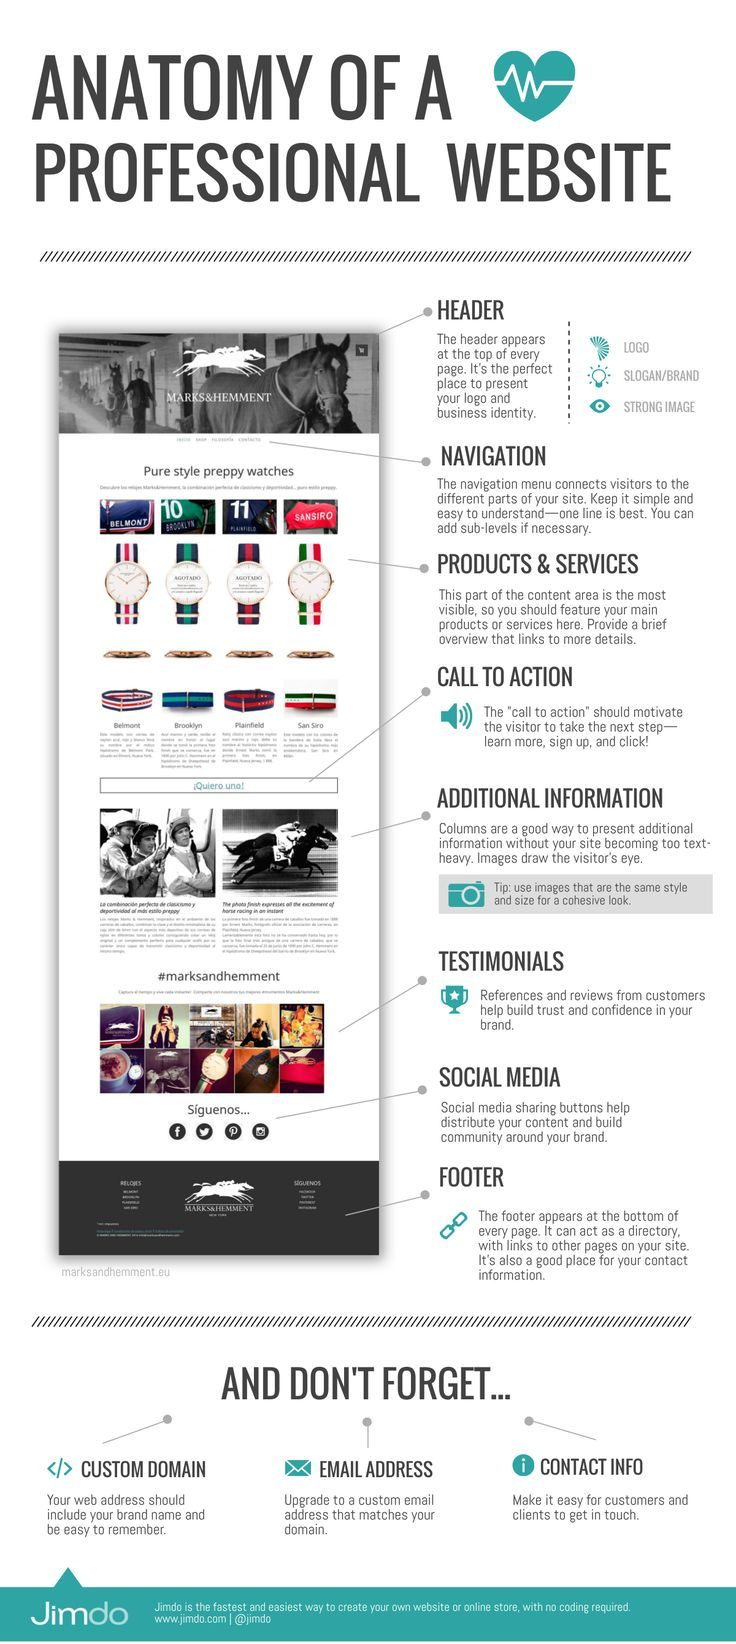 Anatomy Of A Professional Website Infographic Jimdo Web Design Tips Ecommerce Professional Website